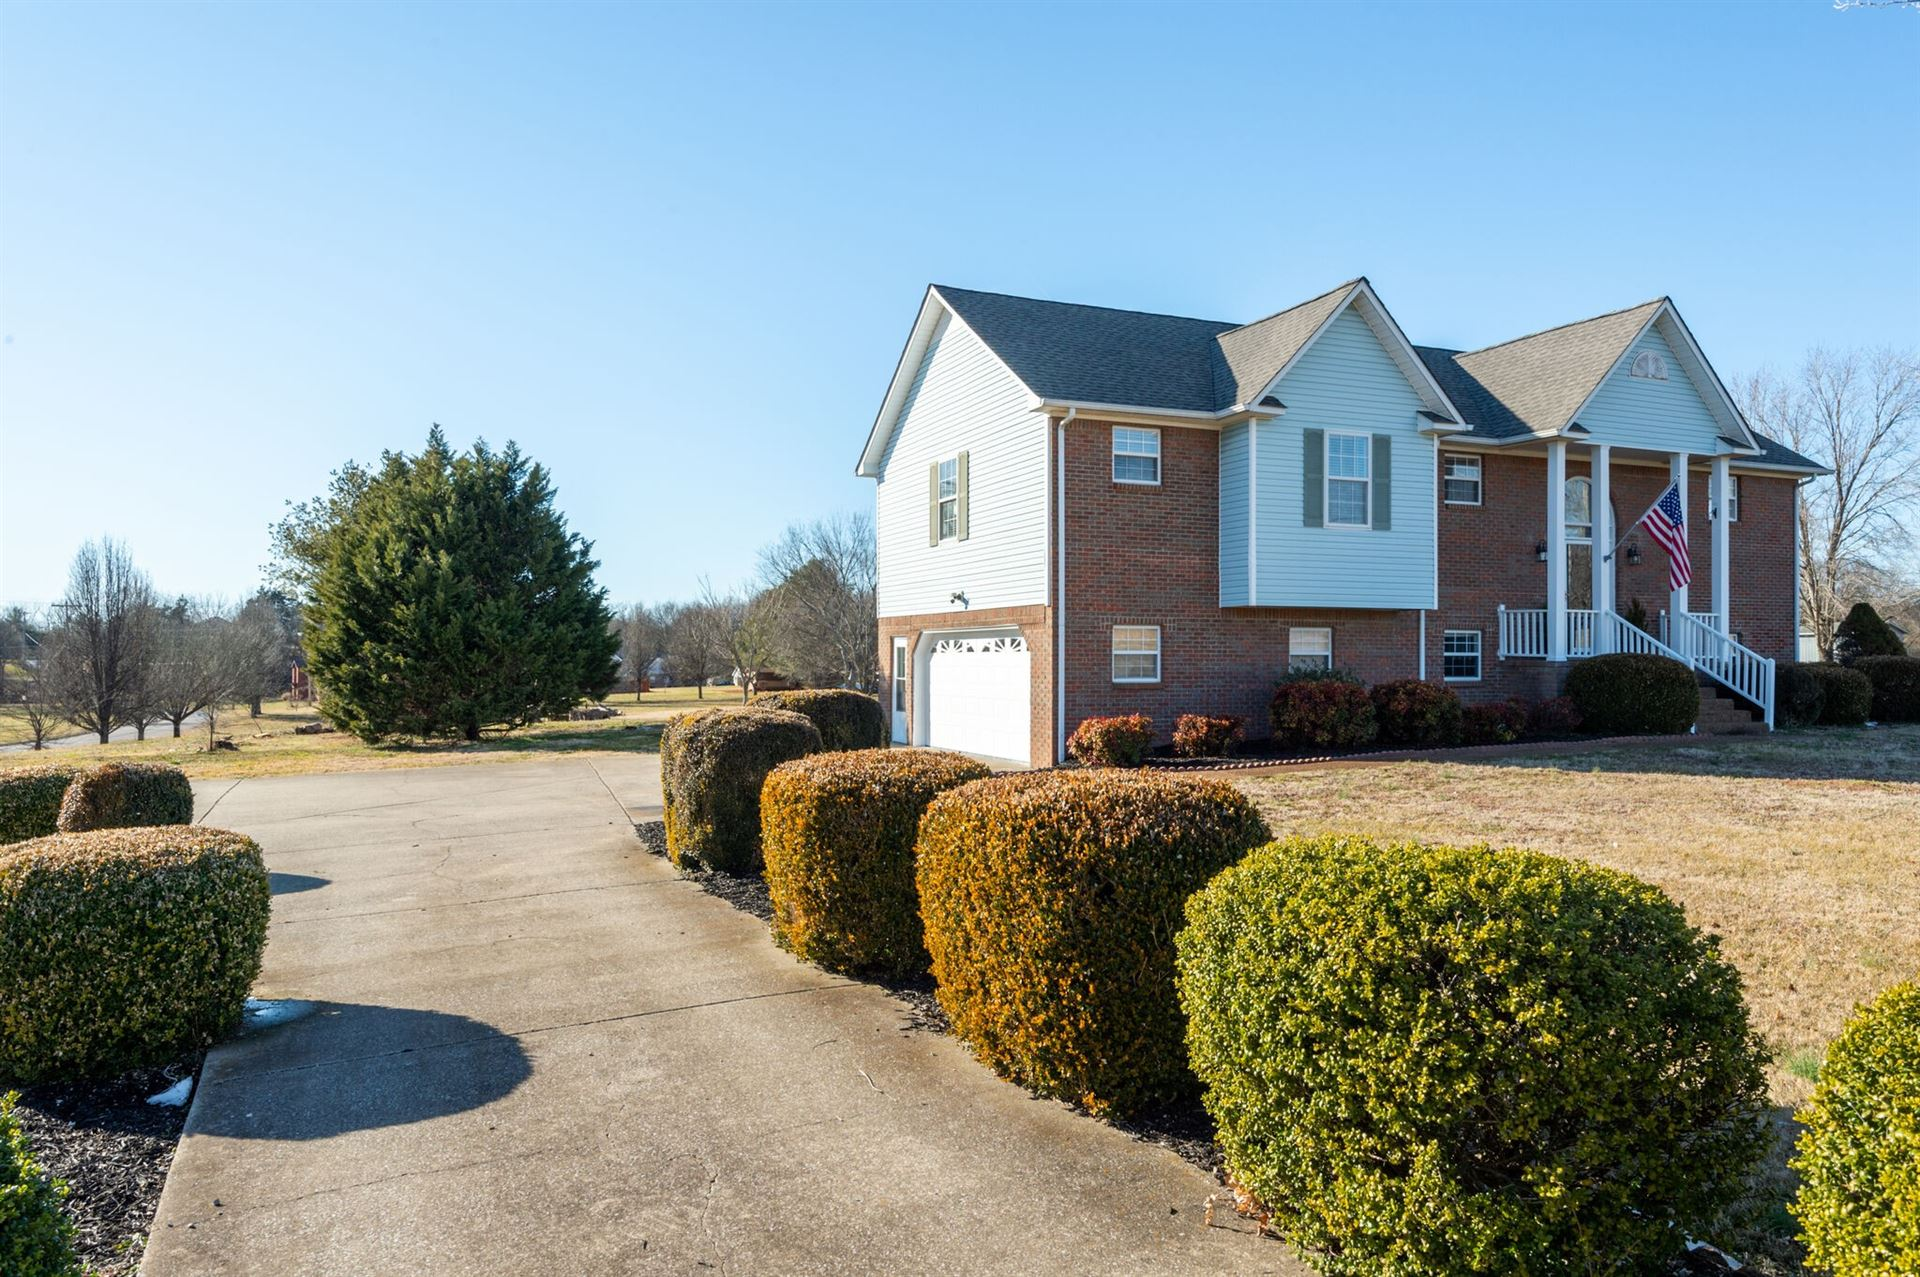 Photo of 2113 Dr Robertson Rd, Spring Hill, TN 37174 (MLS # 2231051)